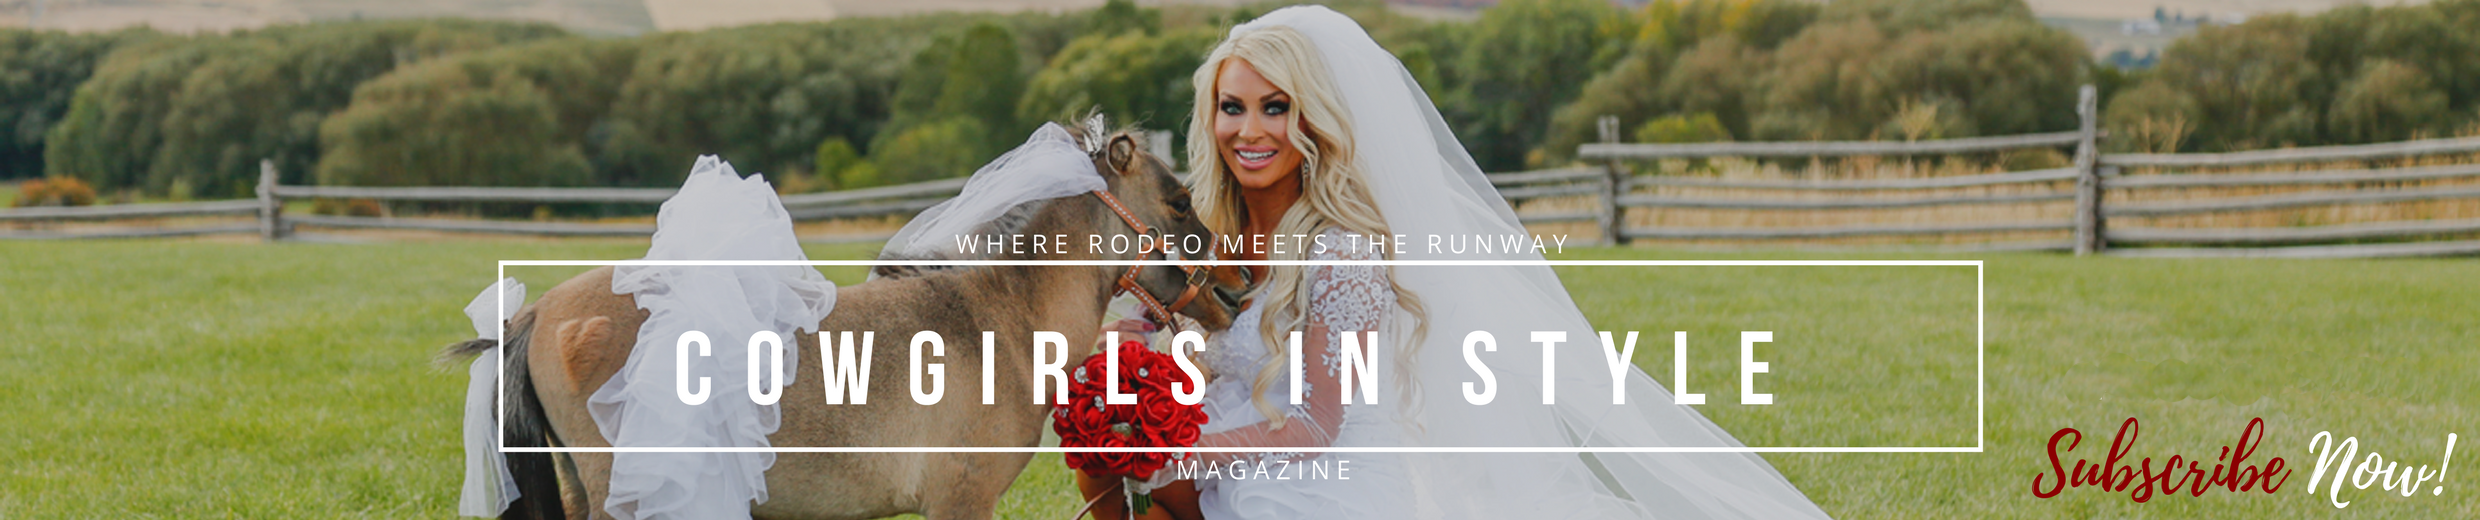 CIS Country Club - Cowgirls In Style Magazine